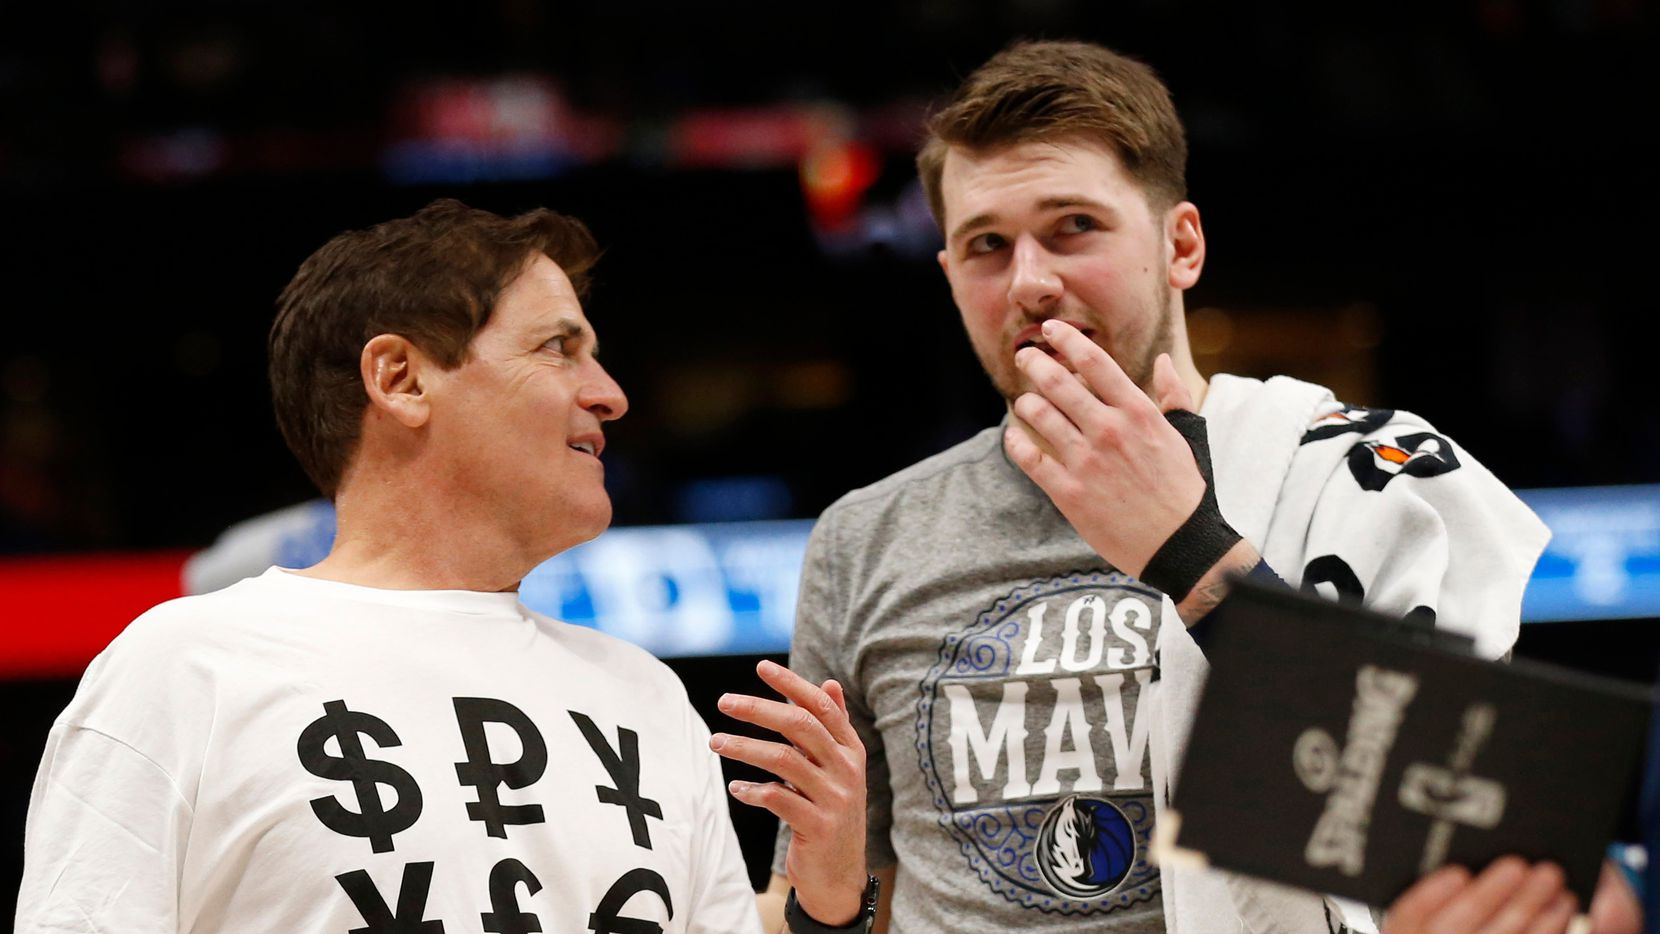 Dallas Mavericks owner Mark Cuban sports a shirt with money signs as he talks to Dallas Mavericks guard Luka Doncic (77) during the second half of play at American Airlines Center in Dallas on Friday, March 6, 2020. Dallas Mavericks defeated the Memphis Grizzlies 121-96.